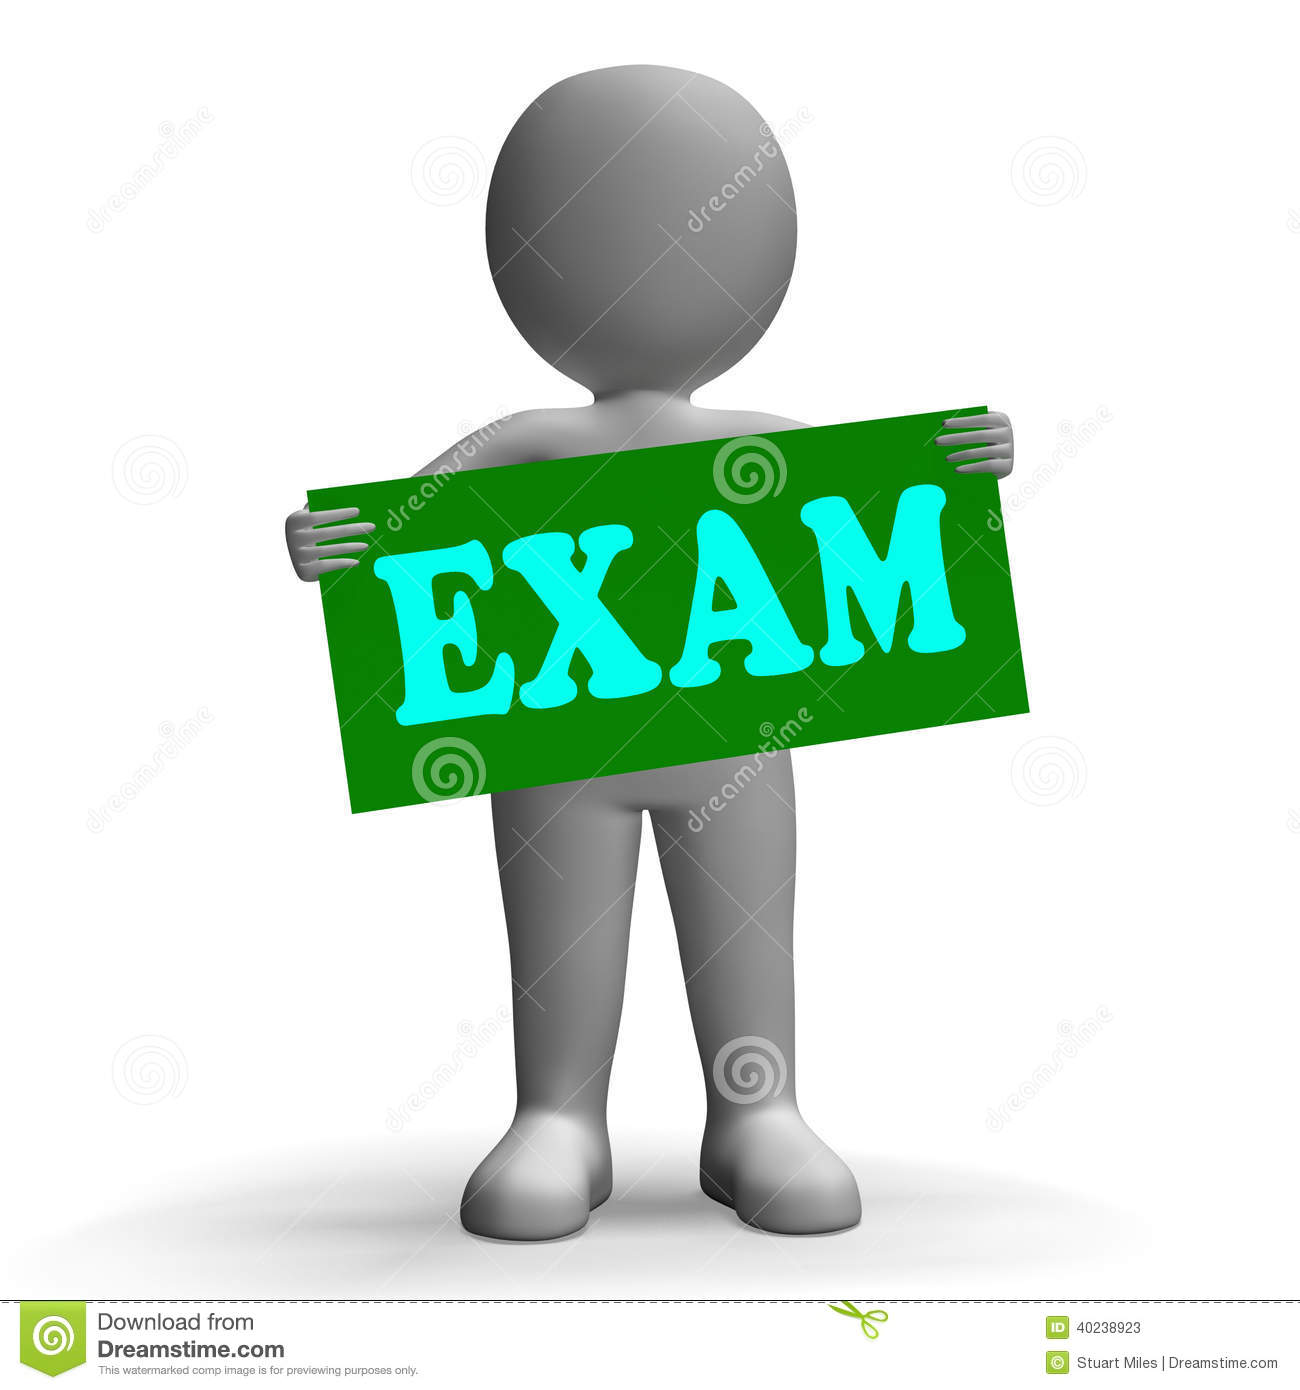 Exam sign character means examinations and stock illustration image